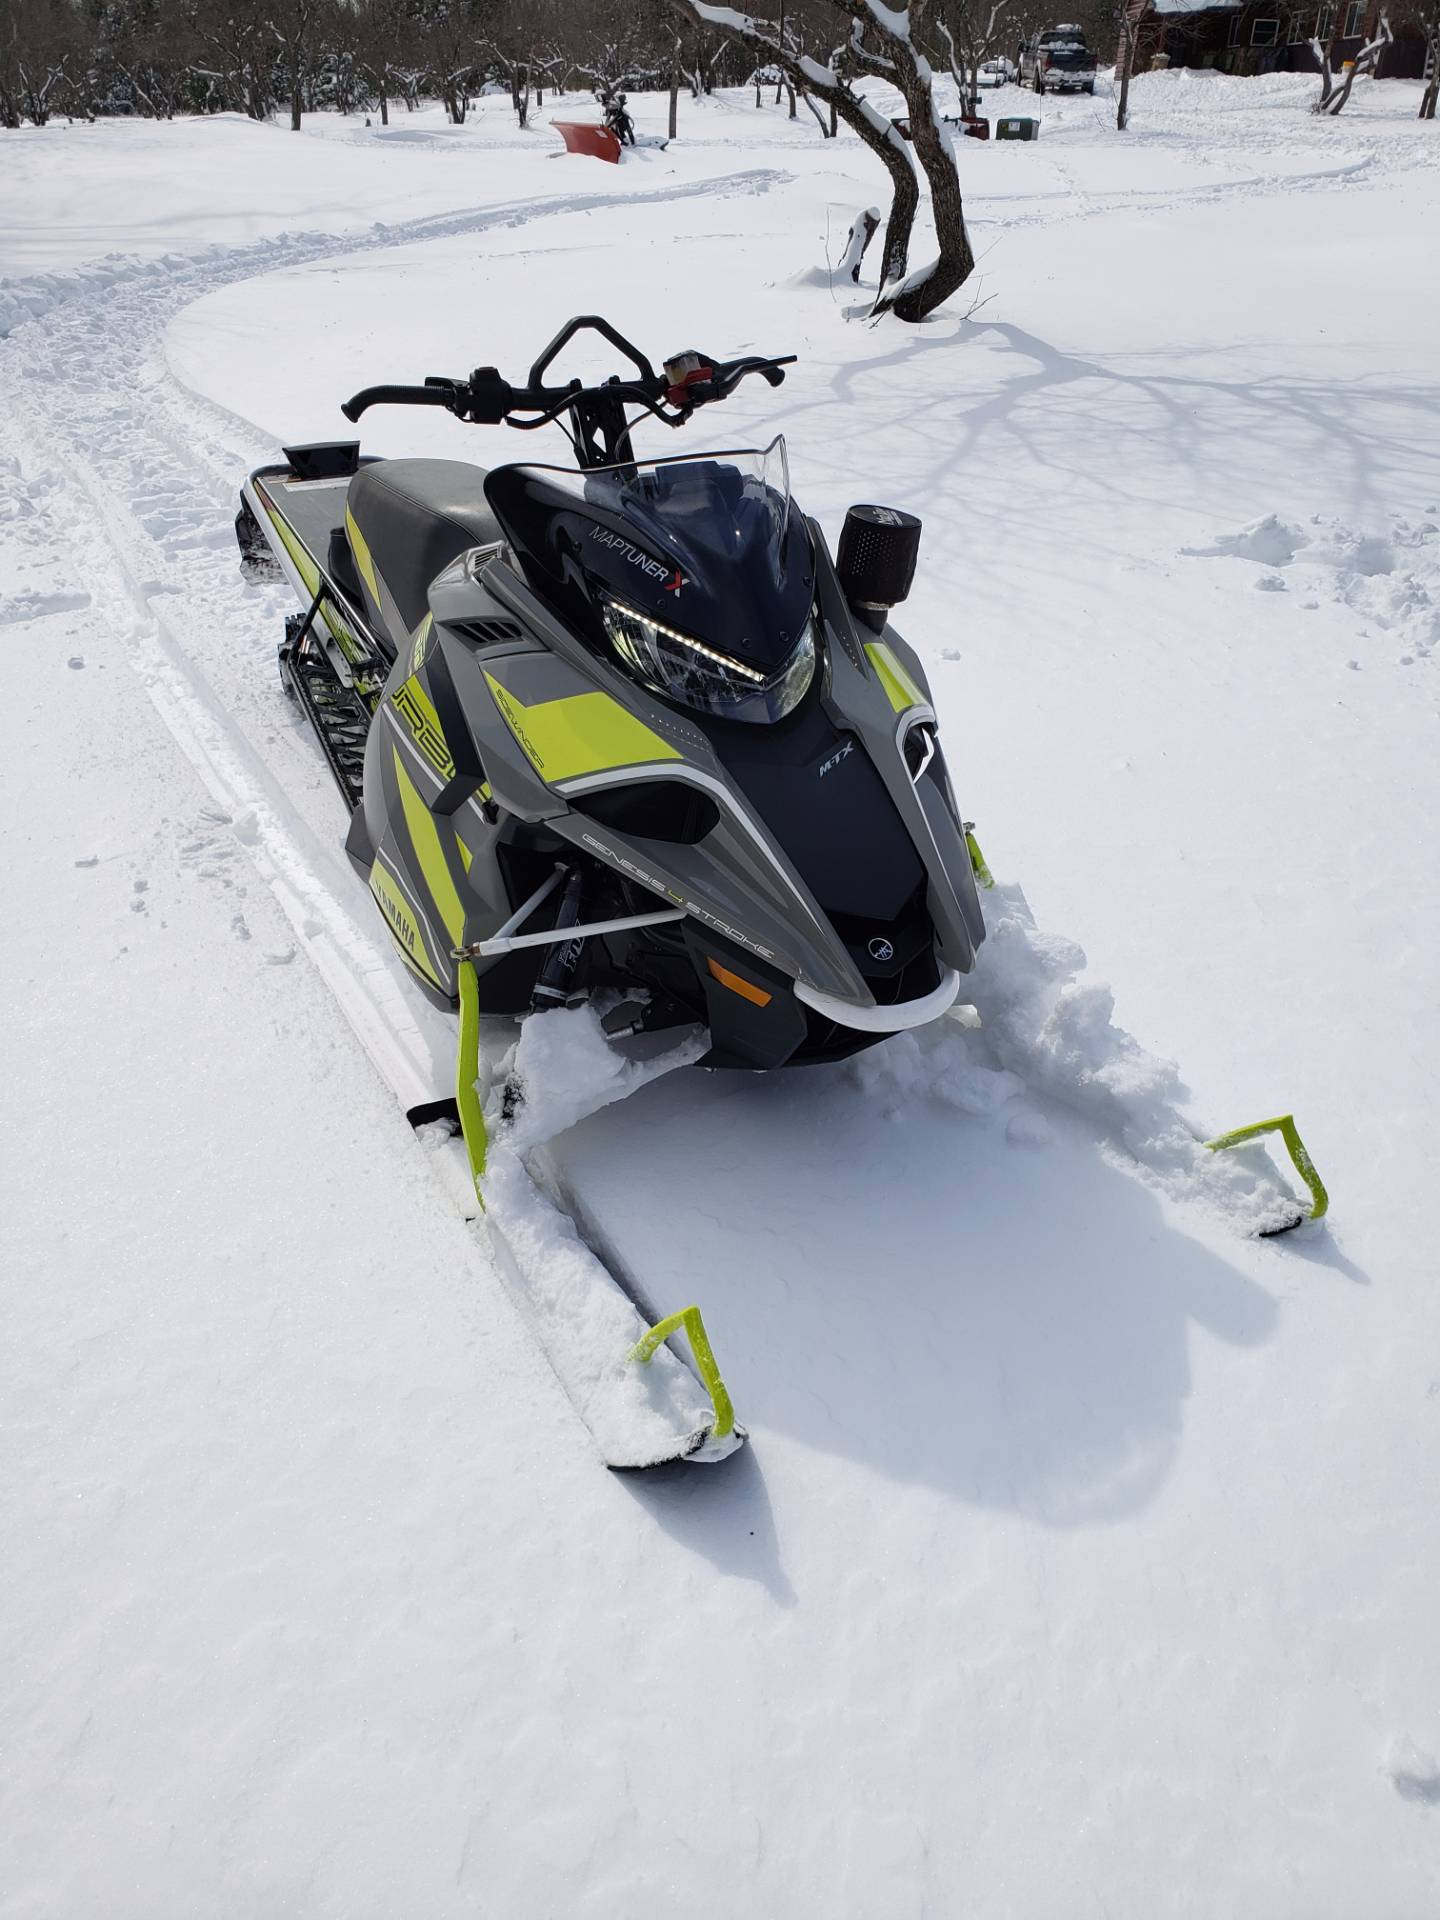 2018 Yamaha MTX SE 153 in Greenland, Michigan - Photo 4